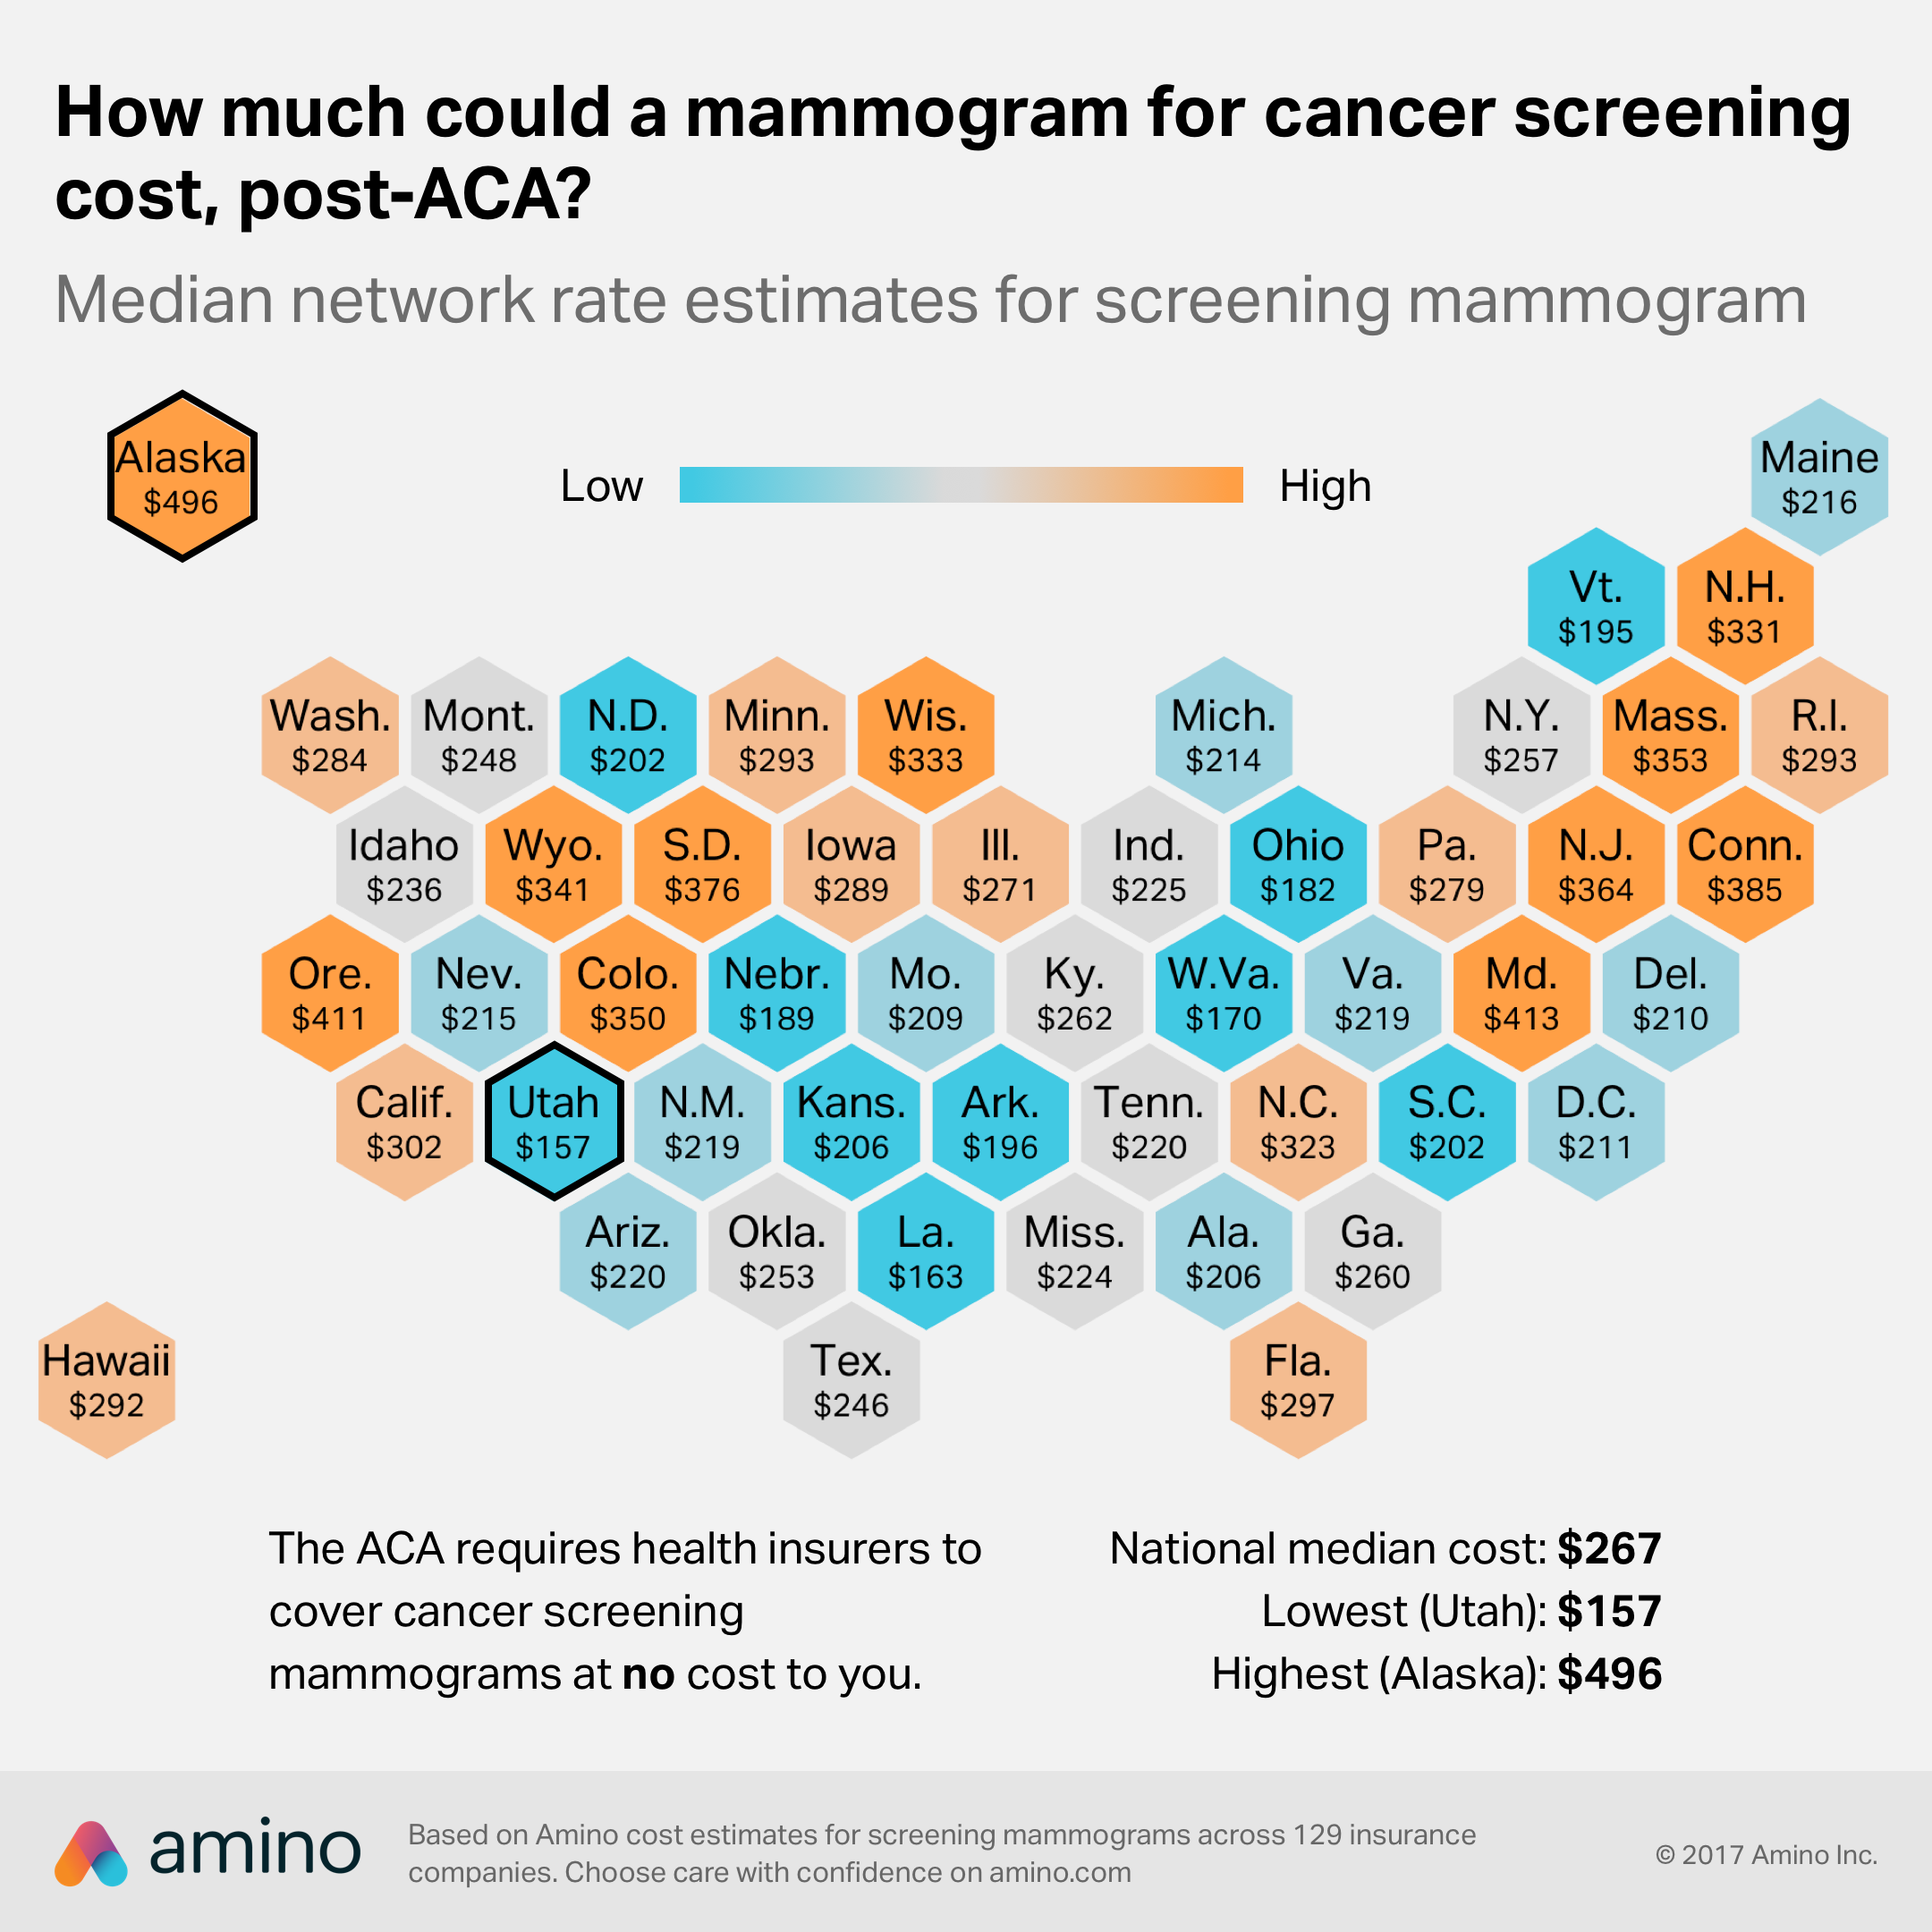 Amino S Current Median Network Rate Estimate For A Screening Mammogram Is 267 Utah Had The Lowest Estimated Cost 157 And Alaska Had The Highest 496